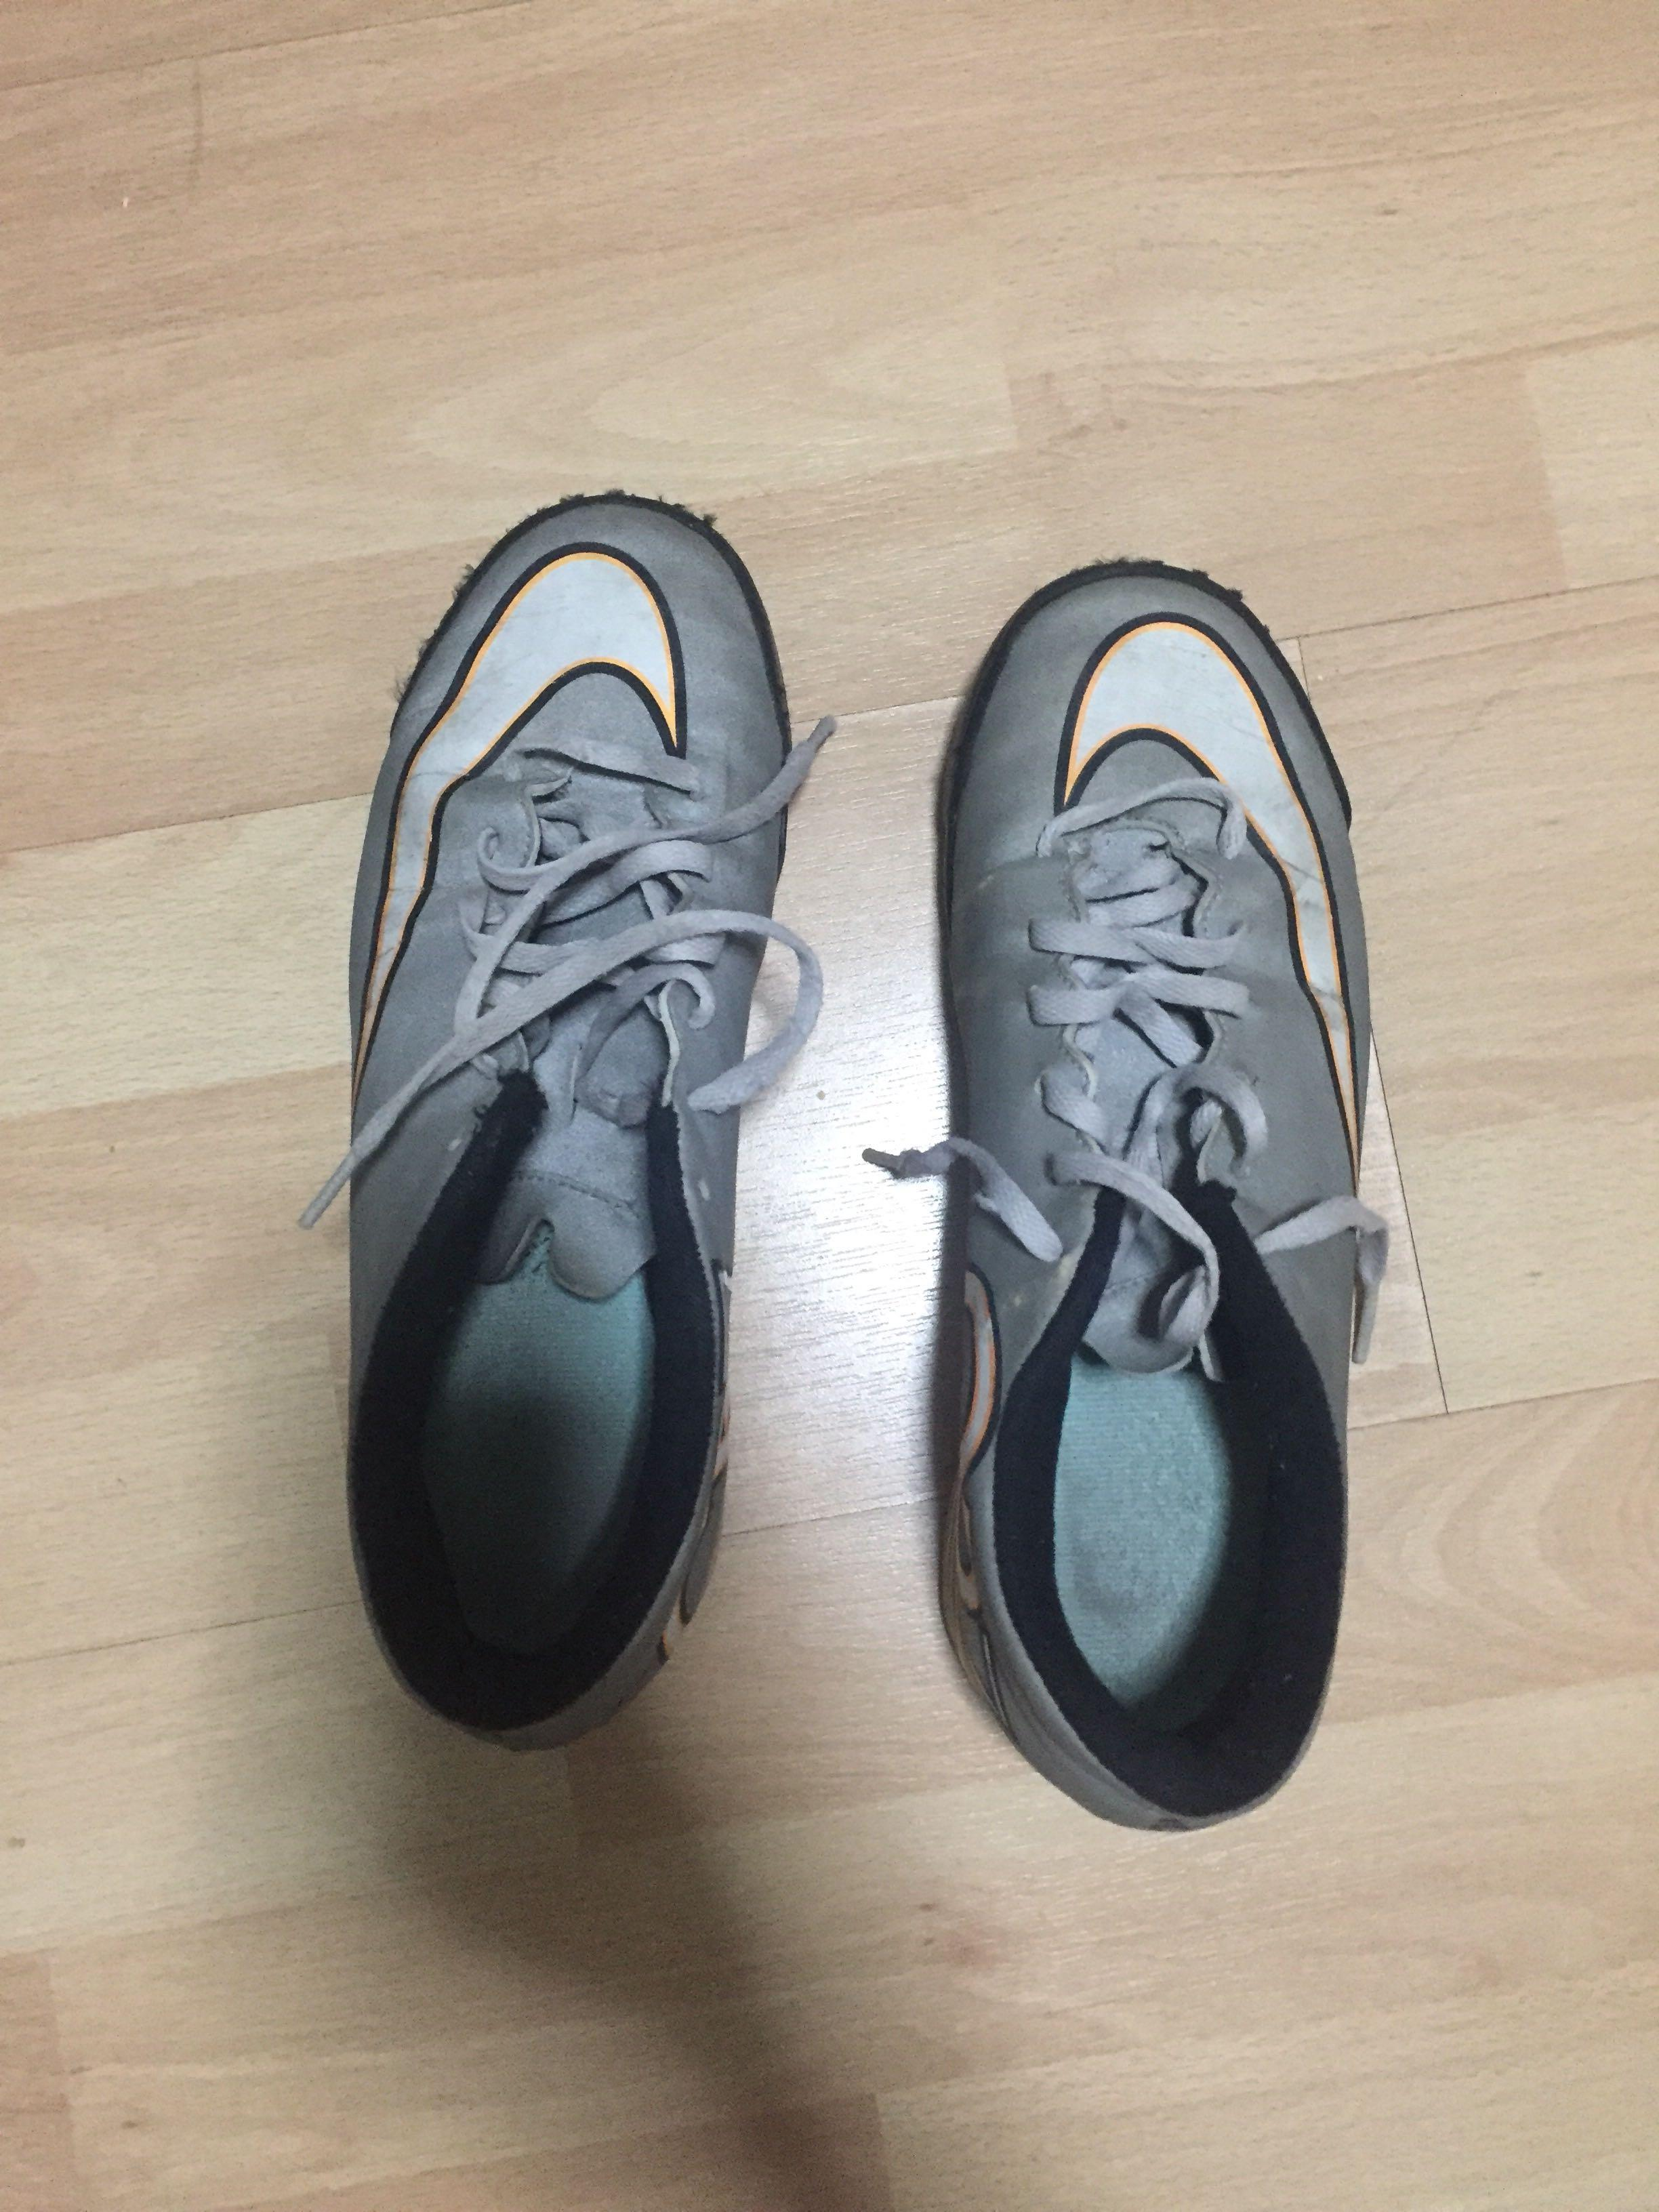 Nike Mercurial Superfly 4 CR7 Gala Review Soccer Soccer